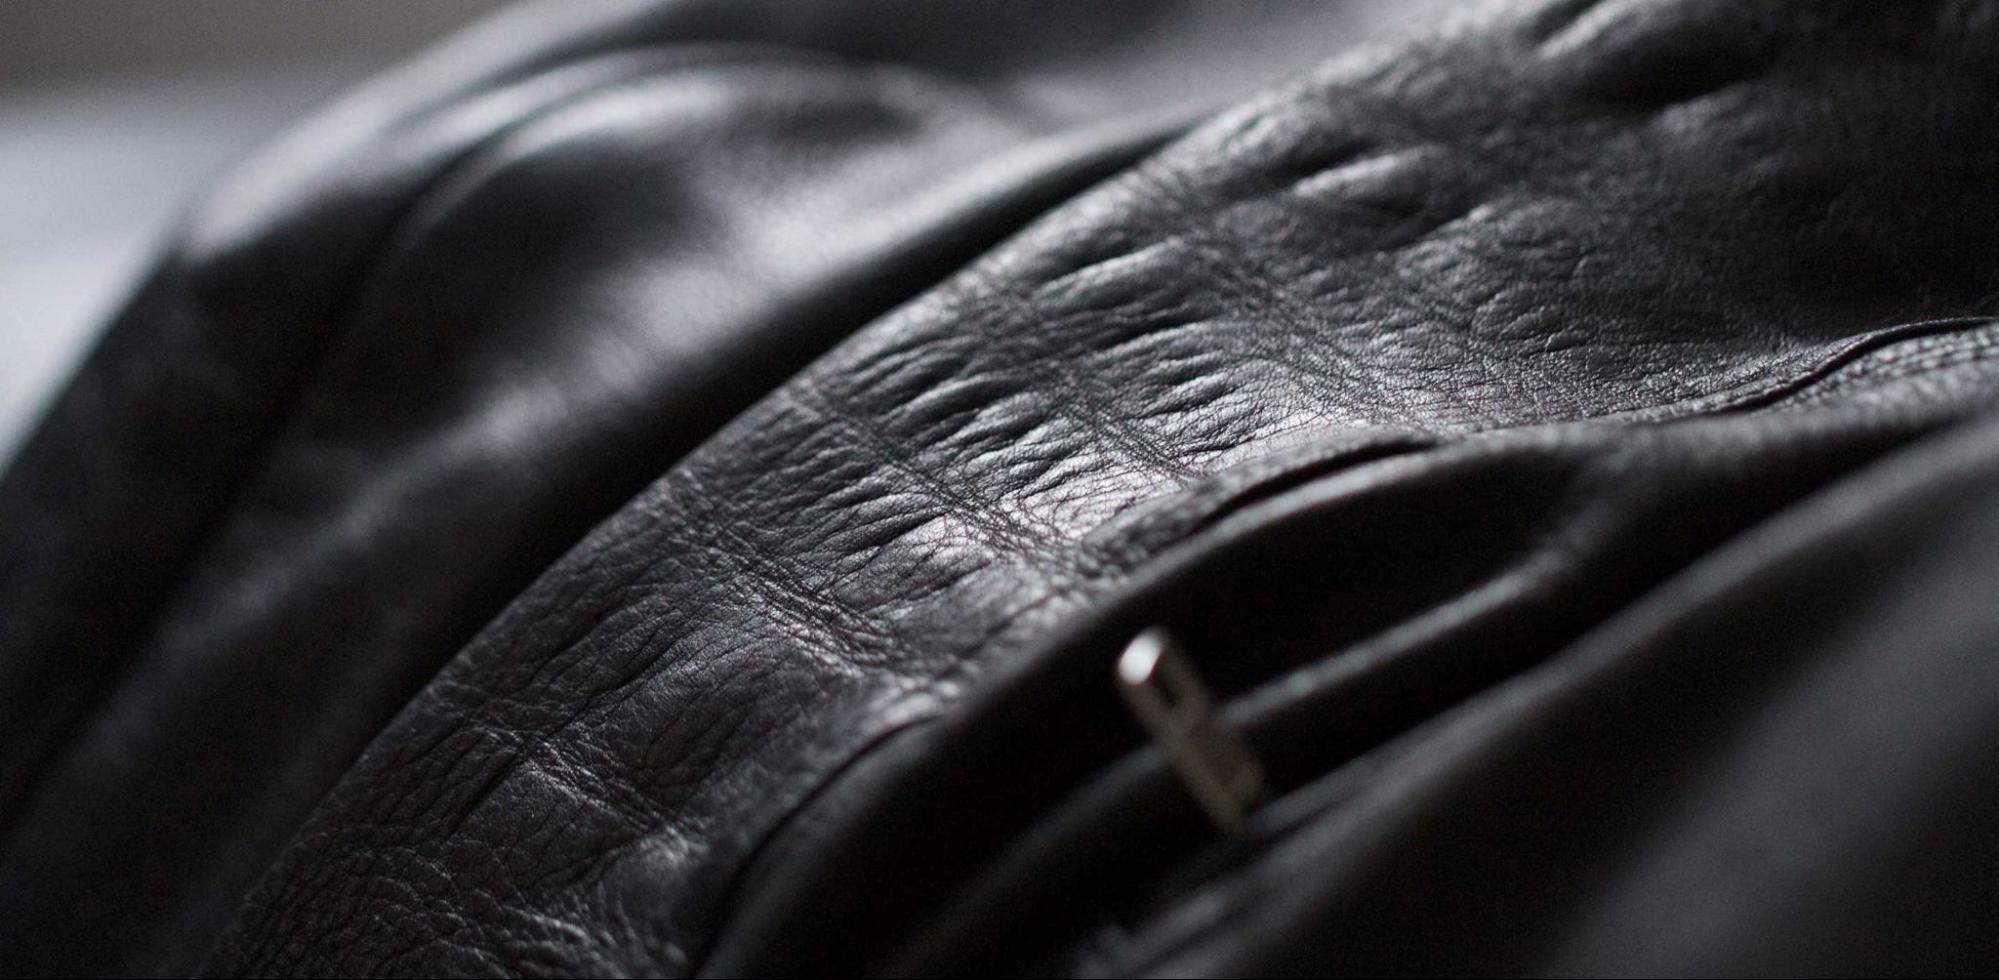 How To Shrink Leather Jacket